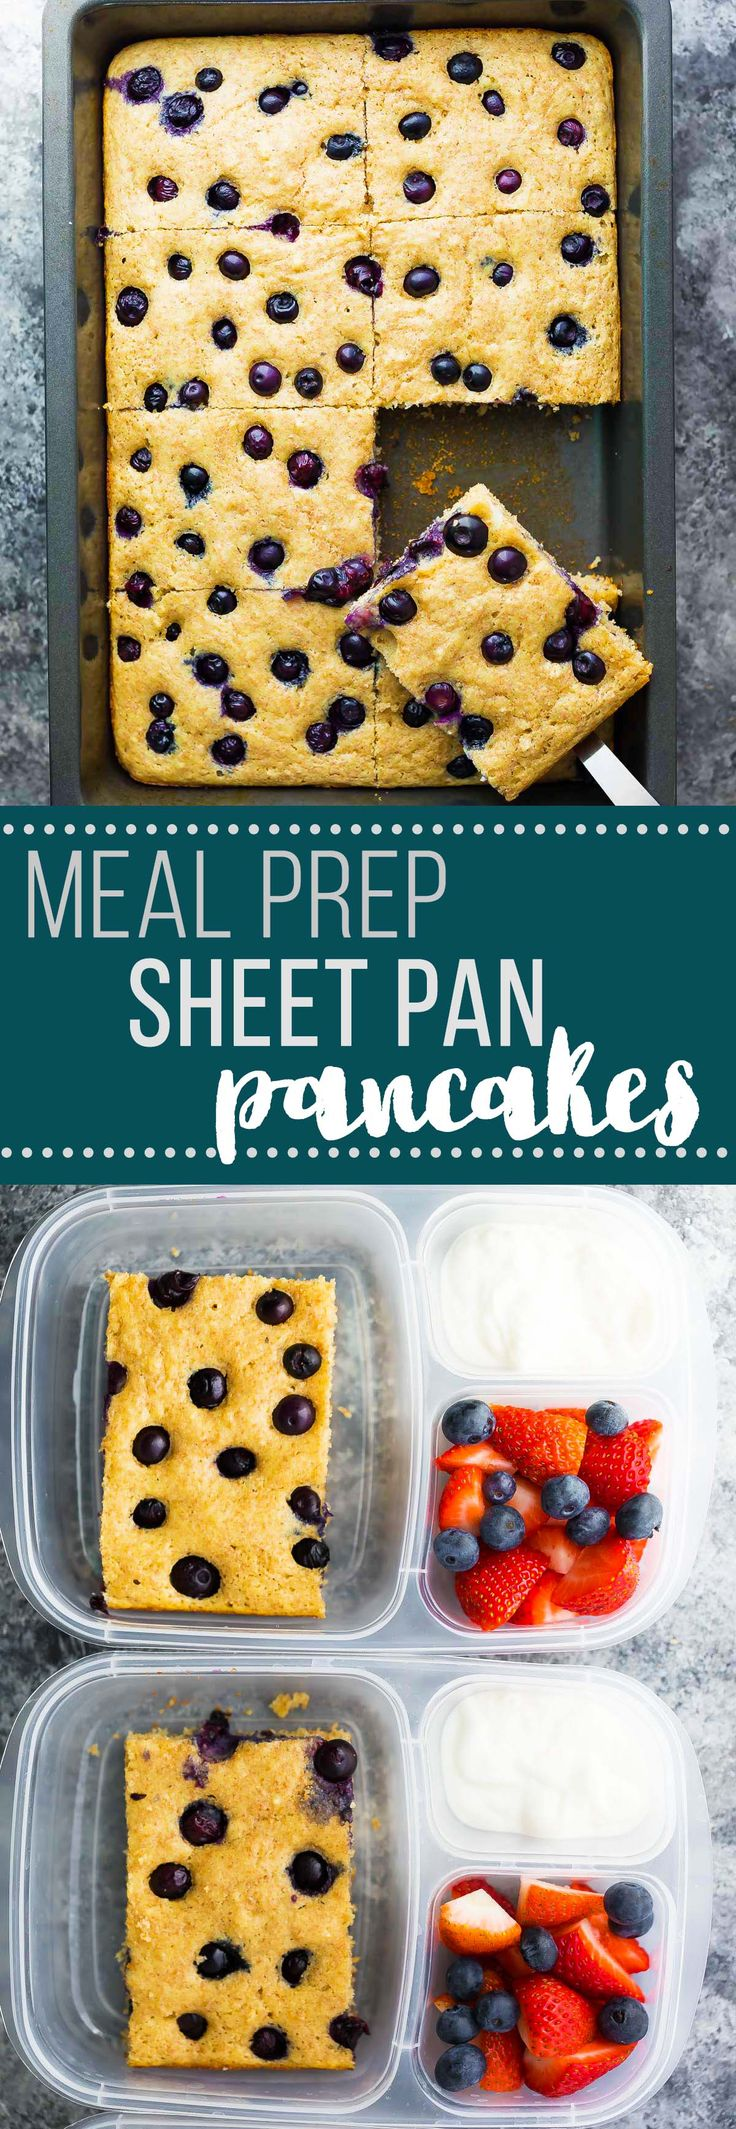 These no flipping meal prep protein pancakes are baked up in a pan, and make a big batch that will actually fill you up! Stock up your freezer and thaw as needed.